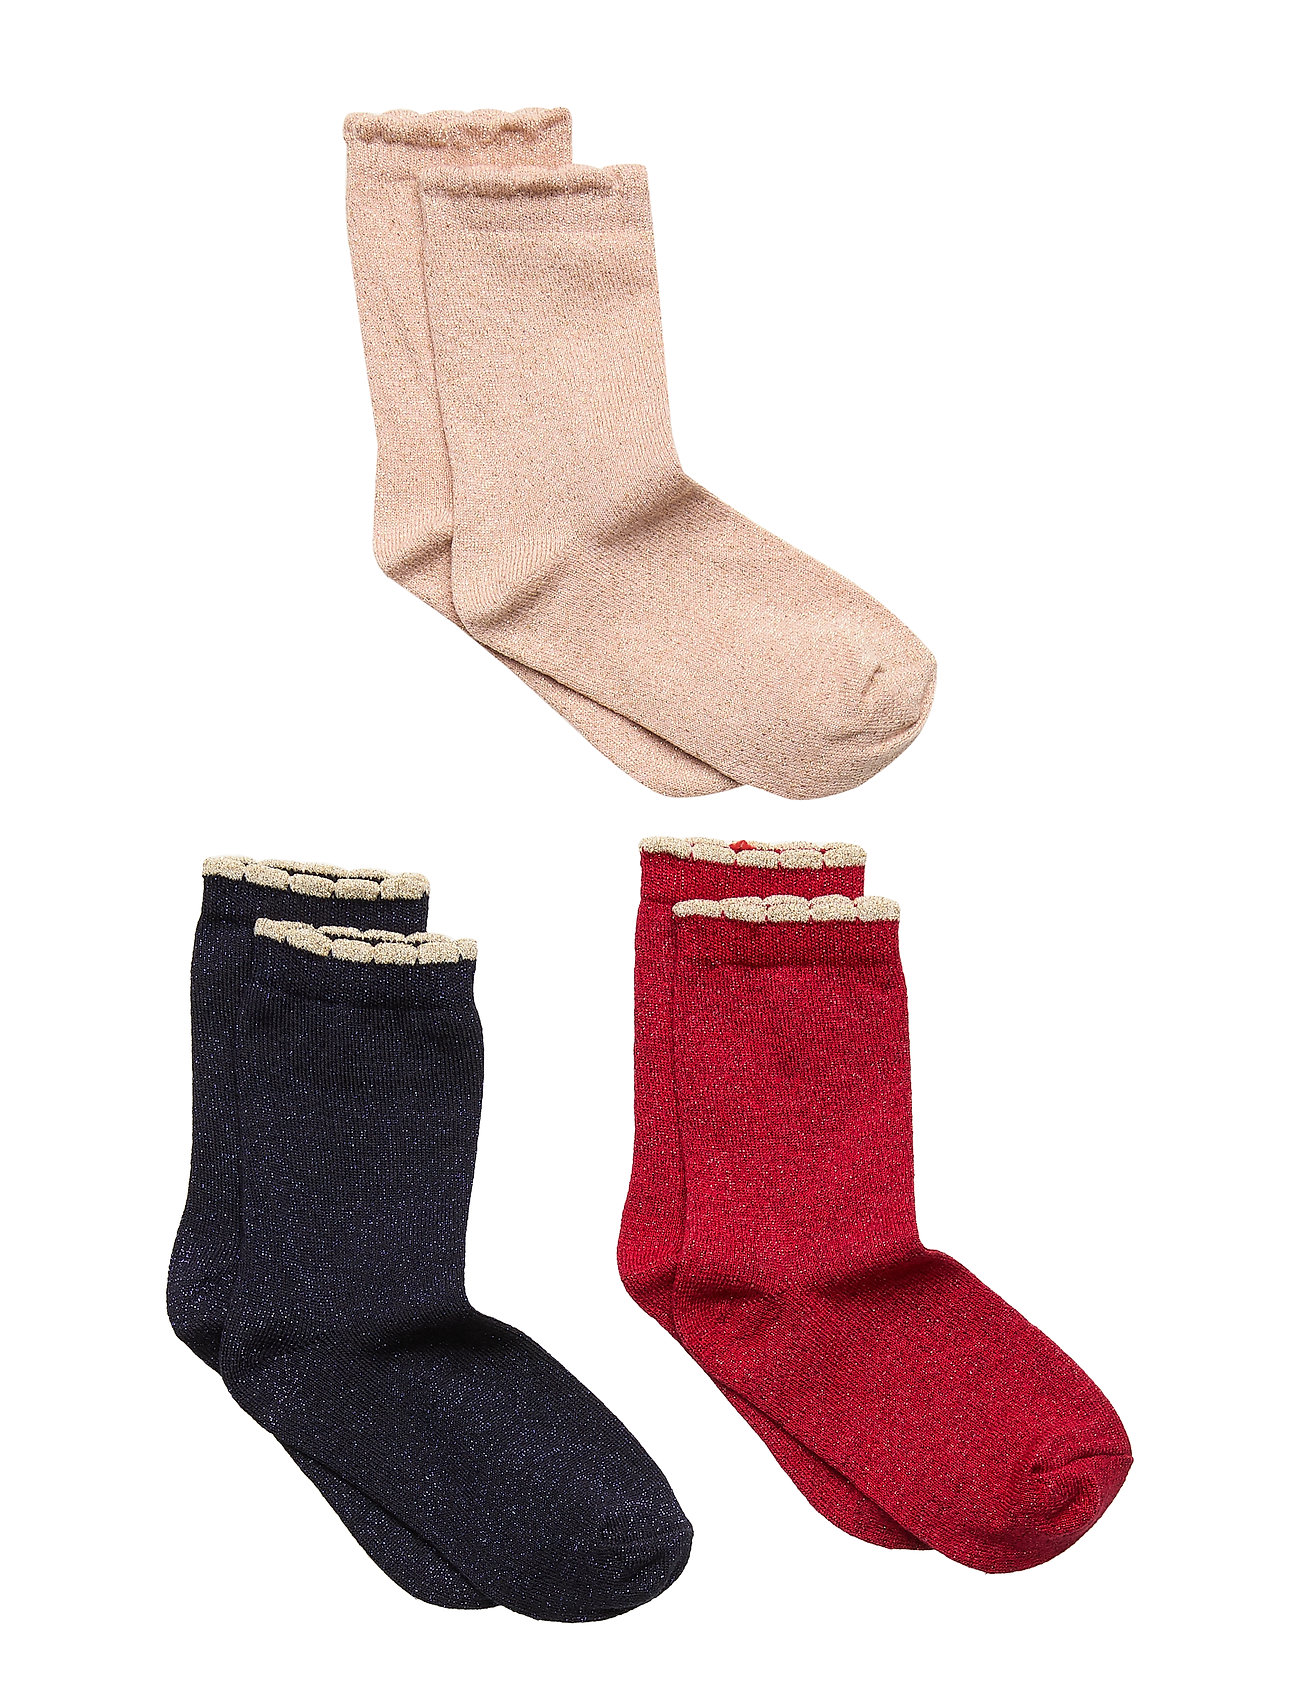 Creamie Socks 3-Pack - CRIMSON